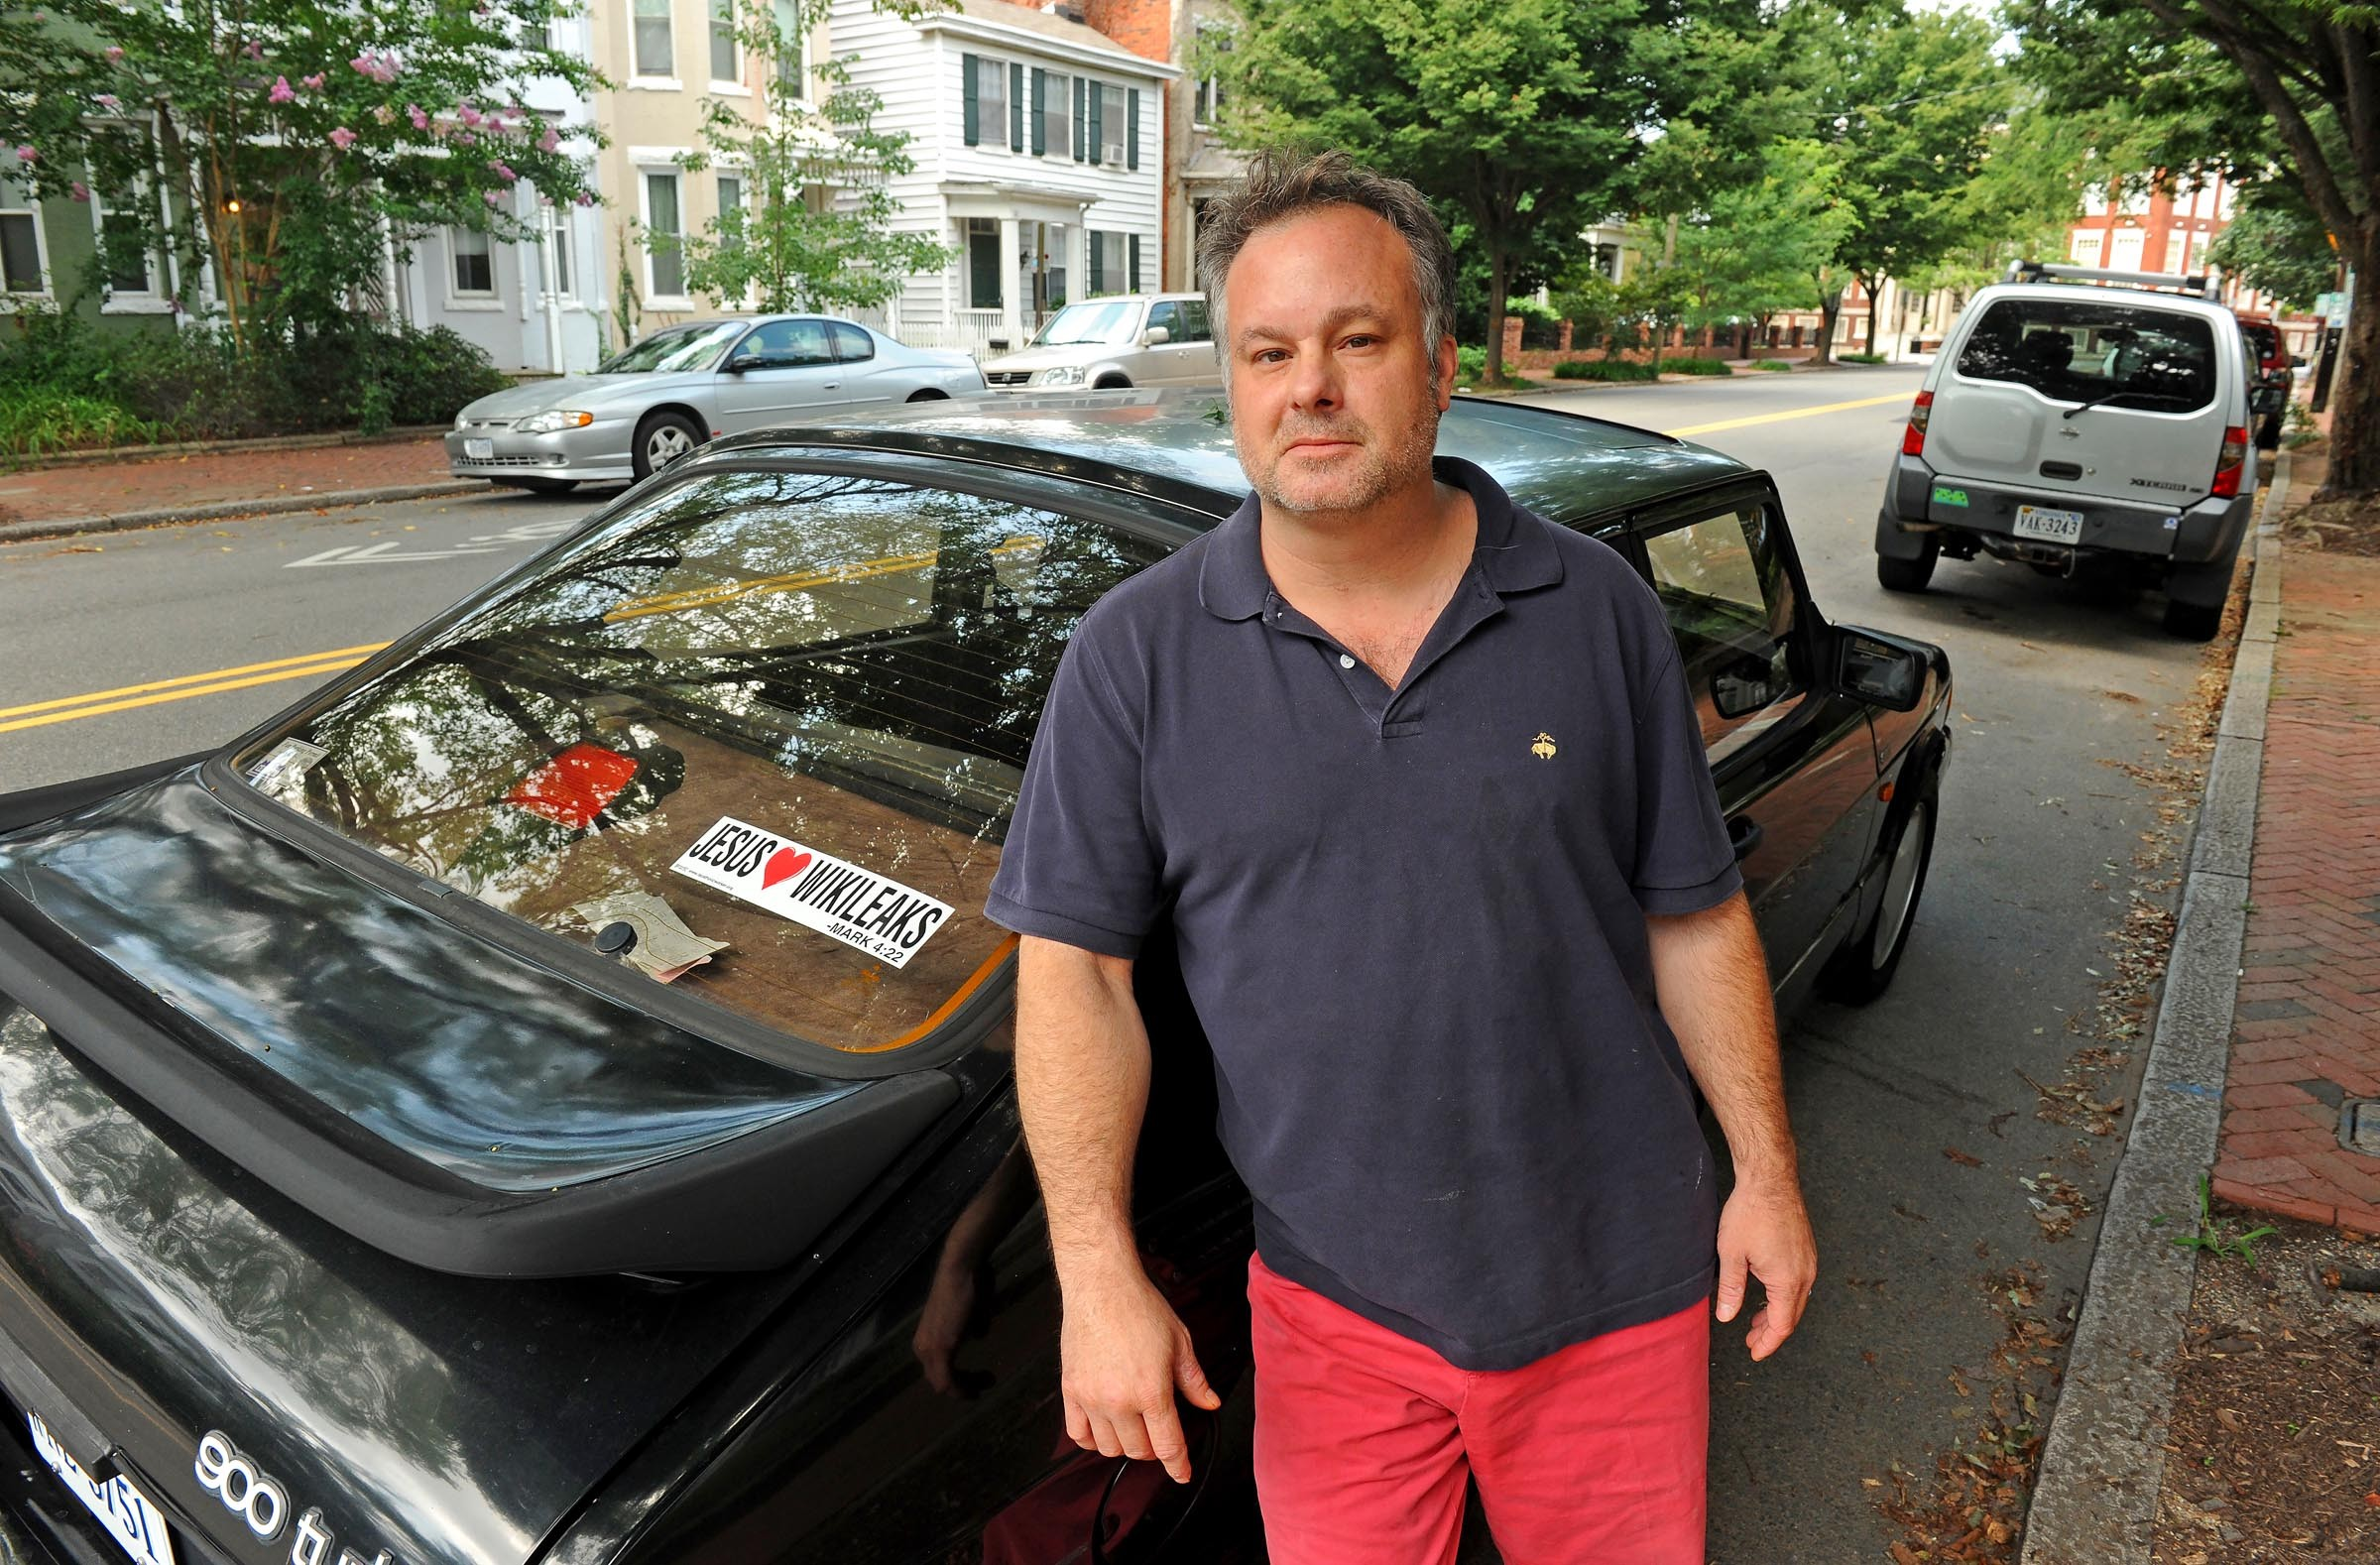 """Trevor FitzGibbon, founder and president of FitzGibbon Media, has a bumper sticker on  his car parked in the Fan that says, """"Jesus [heart] WikiLeaks,"""" with reference to a Bible passage from Mark 4:22: """"For there is nothing hid, which shall not be manifested; neither was any thing kept secret, but that it should come abroad."""" - SCOTT ELMQUIST"""